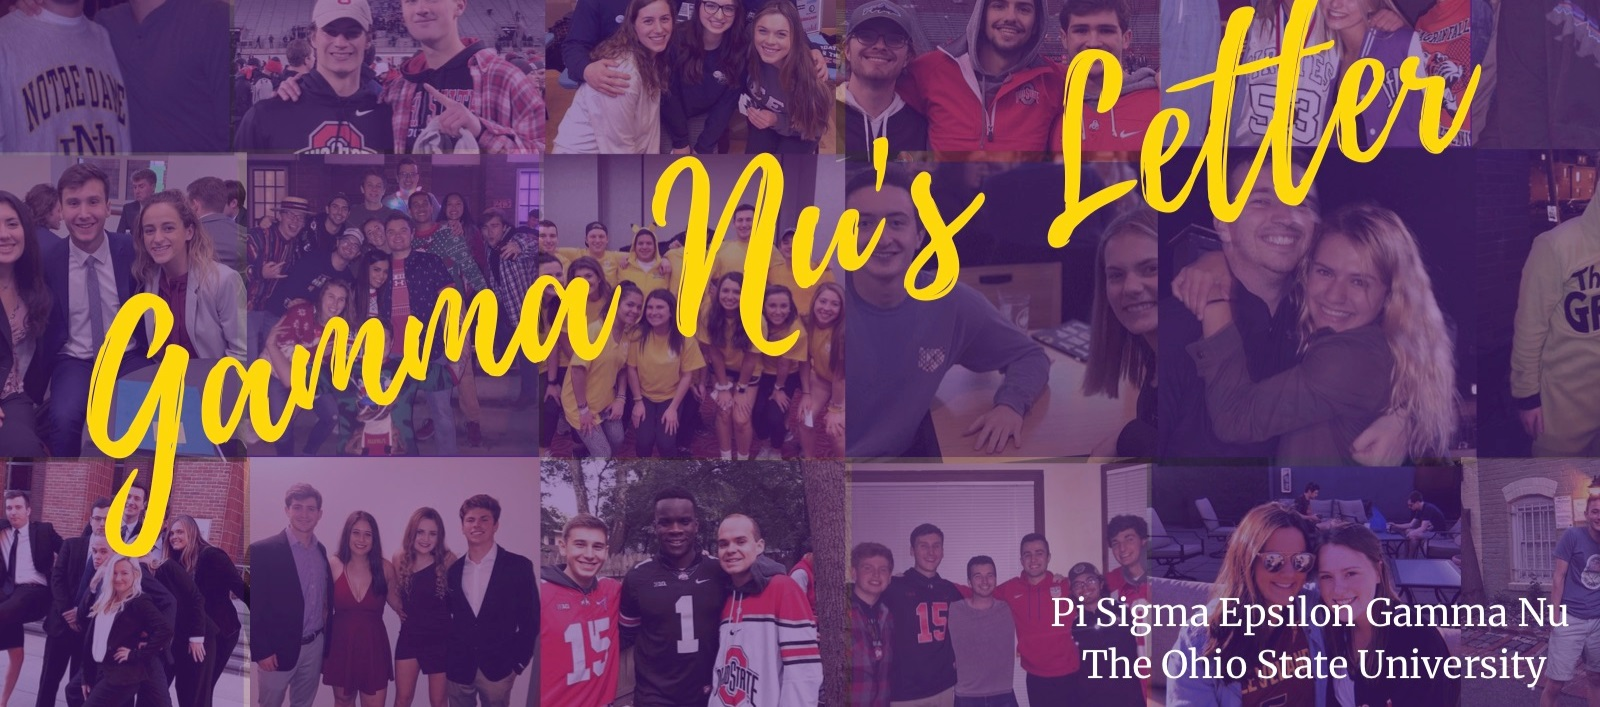 February 2019 - Welcome to the Gamma Nu's Letter! In our first online edition, we introduce our 2019 Executive Board, recruitment information, and everything we have been up to during this long (and well deserved) winter break!